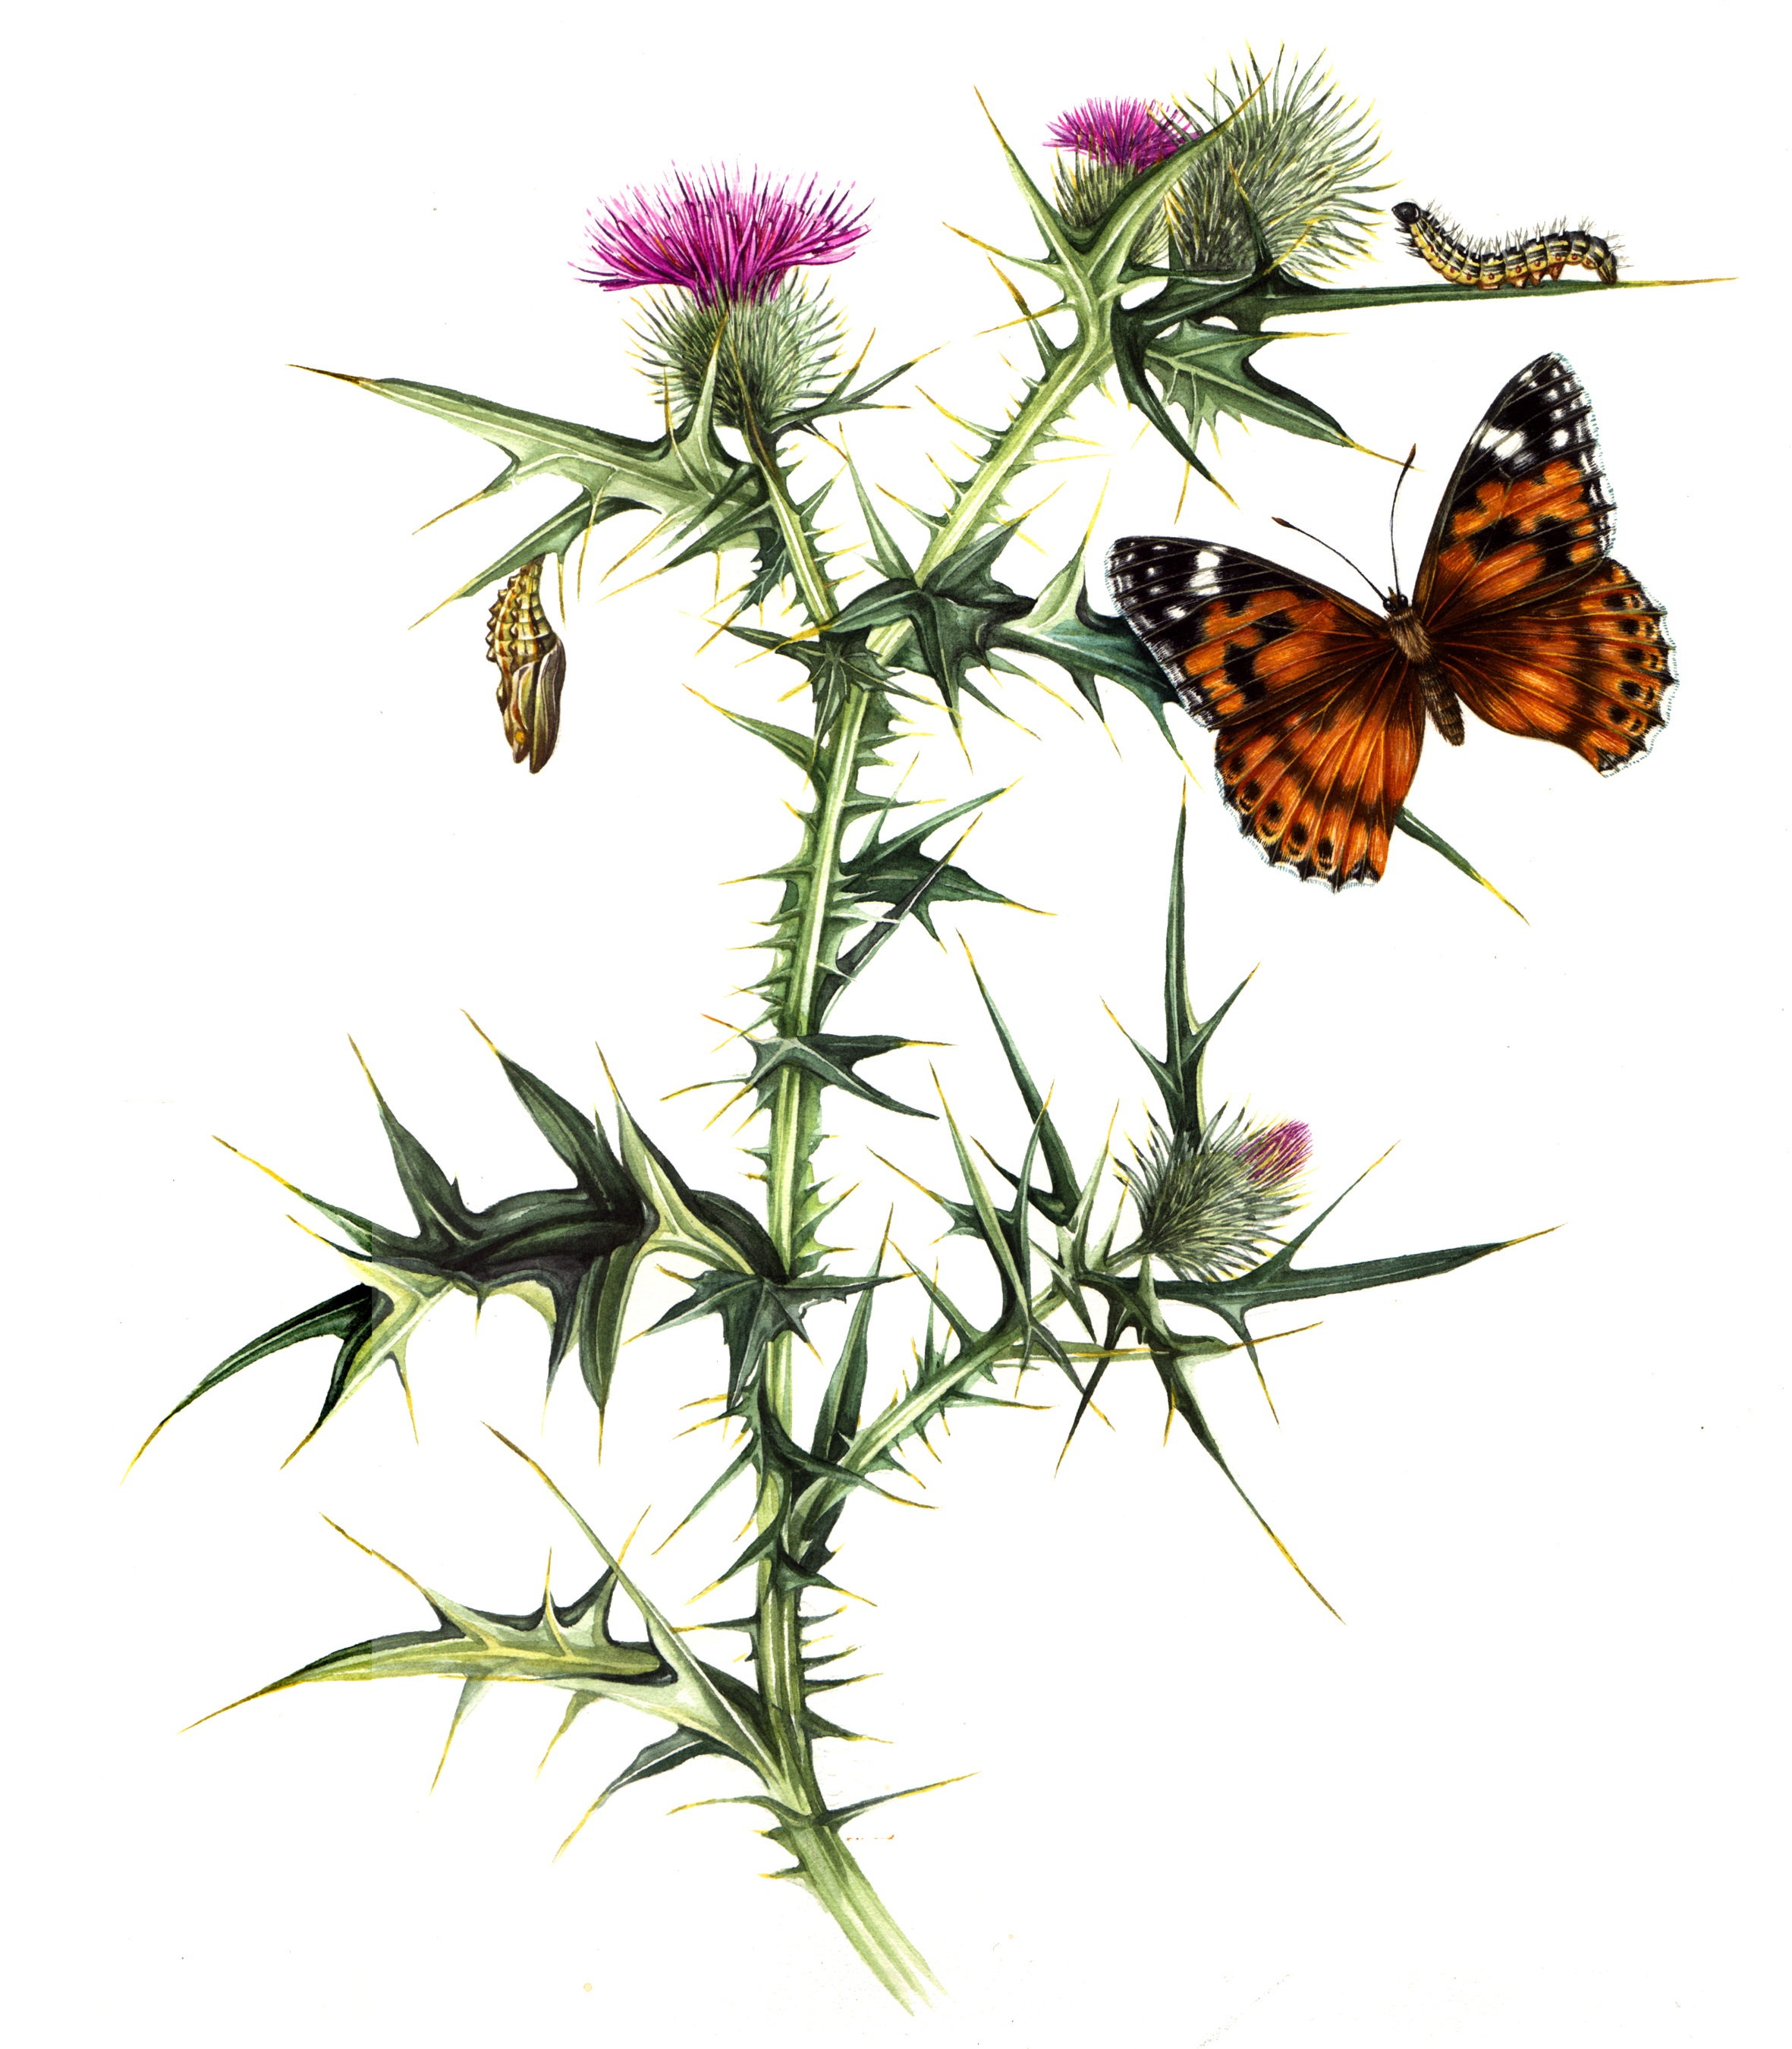 Painted Lady Vanessa Cardui Butterfly With Host Plant Thistle And Life Cycle Stages Lizzie Harper